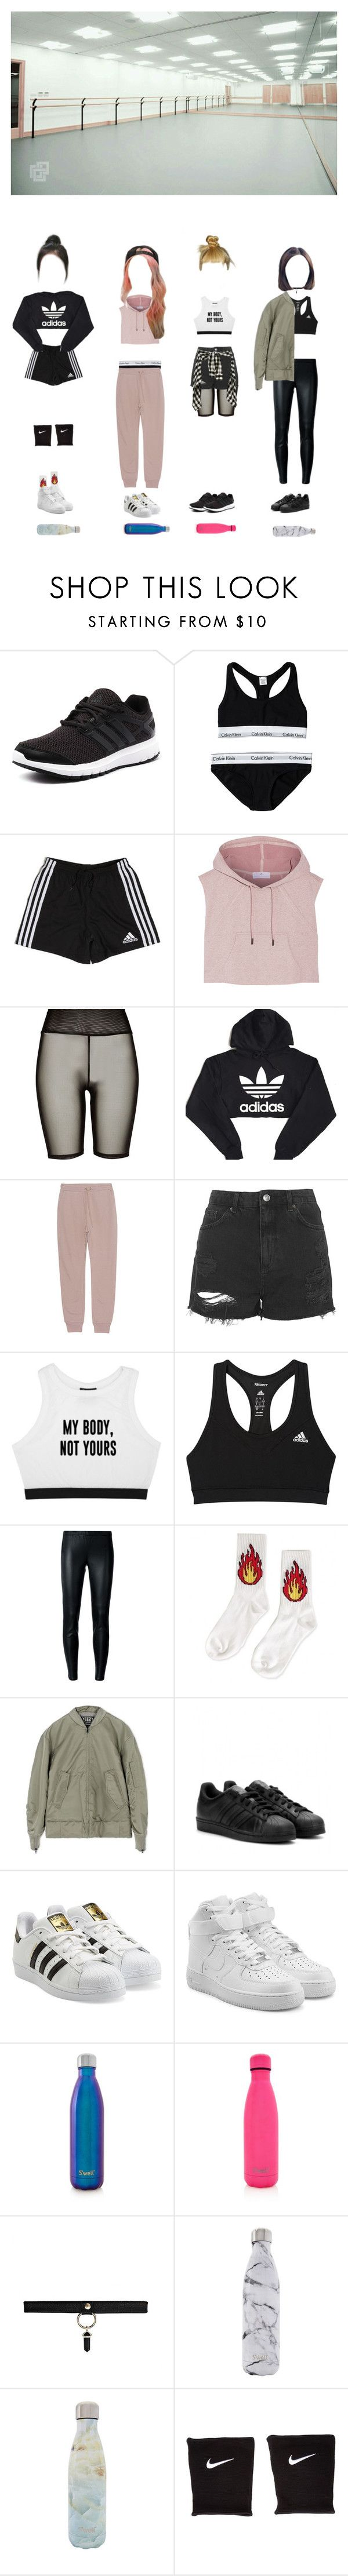 """""""GIRLDEM - """"CRUSH"""" Dance Practice Video"""" by girldem-official ❤ liked on Polyvore featuring adidas, Calvin Klein, River Island, T By Alexander Wang, Topshop, Minga, MICHAEL Michael Kors, adidas Originals, NIKE and S'well"""